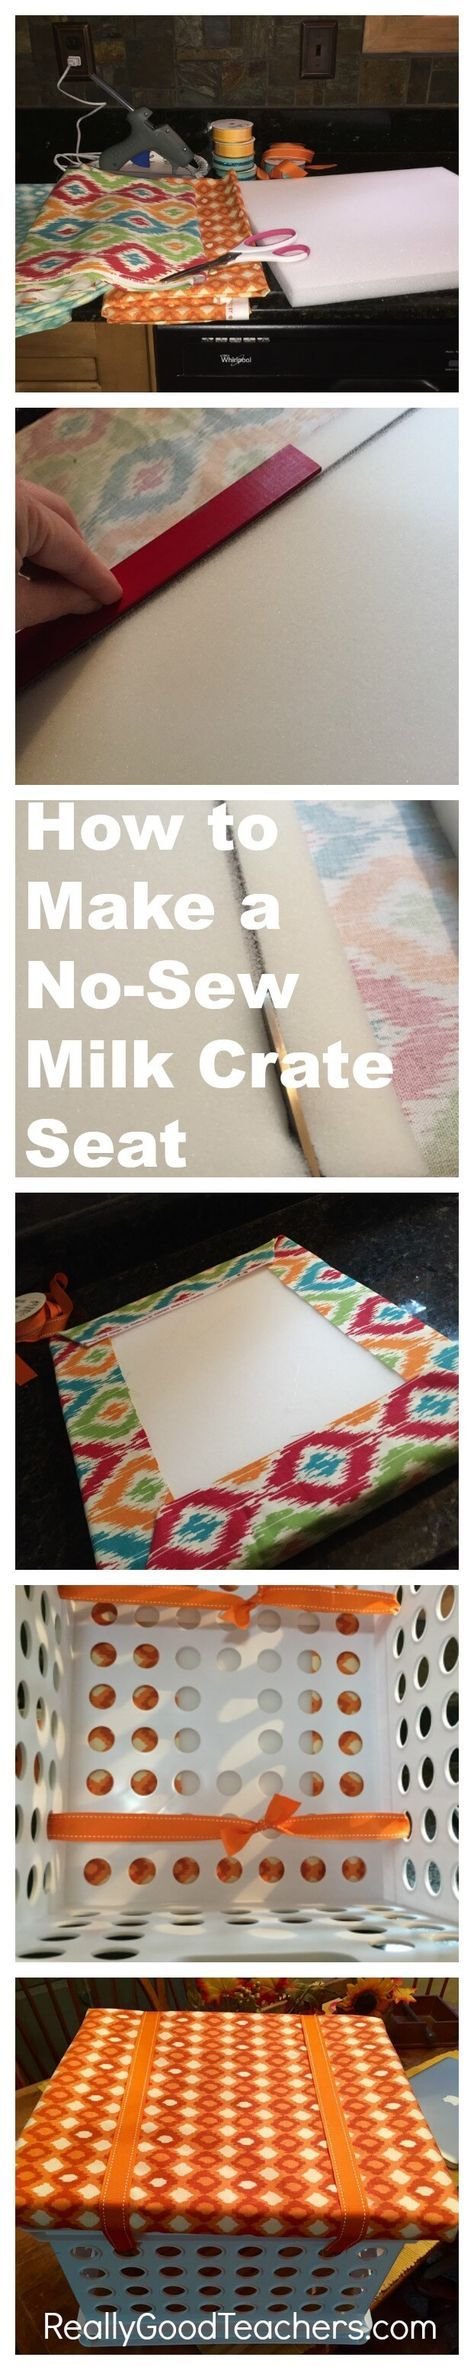 The Making of a Milk Crate Seat